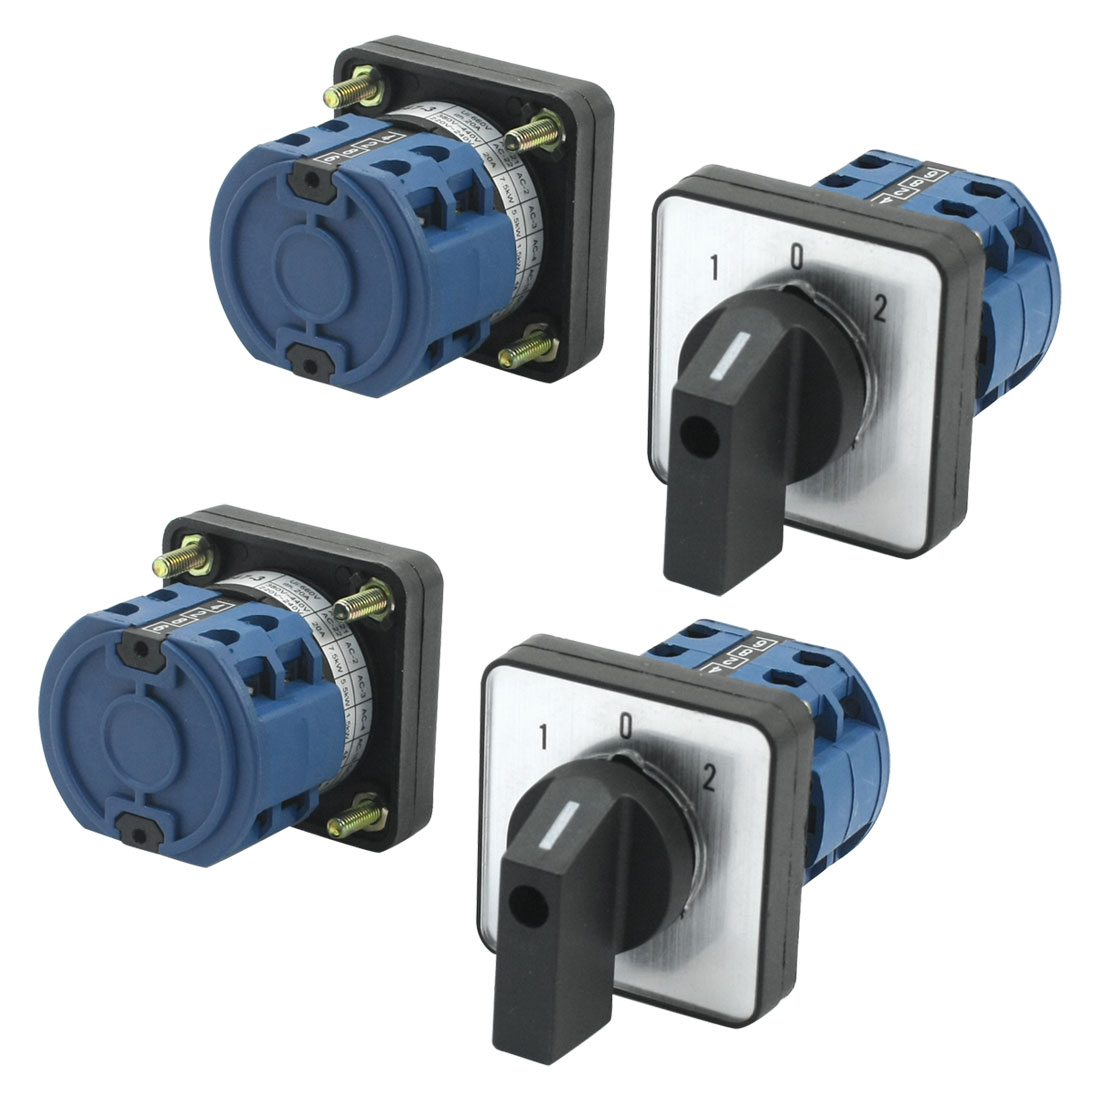 4Pcs CA10-20/2 Ui 660V Ith 20A 8 Screw Terminal 3-Position 2-Pole Square Panel Mounting Rotary Cam Changeover Switch